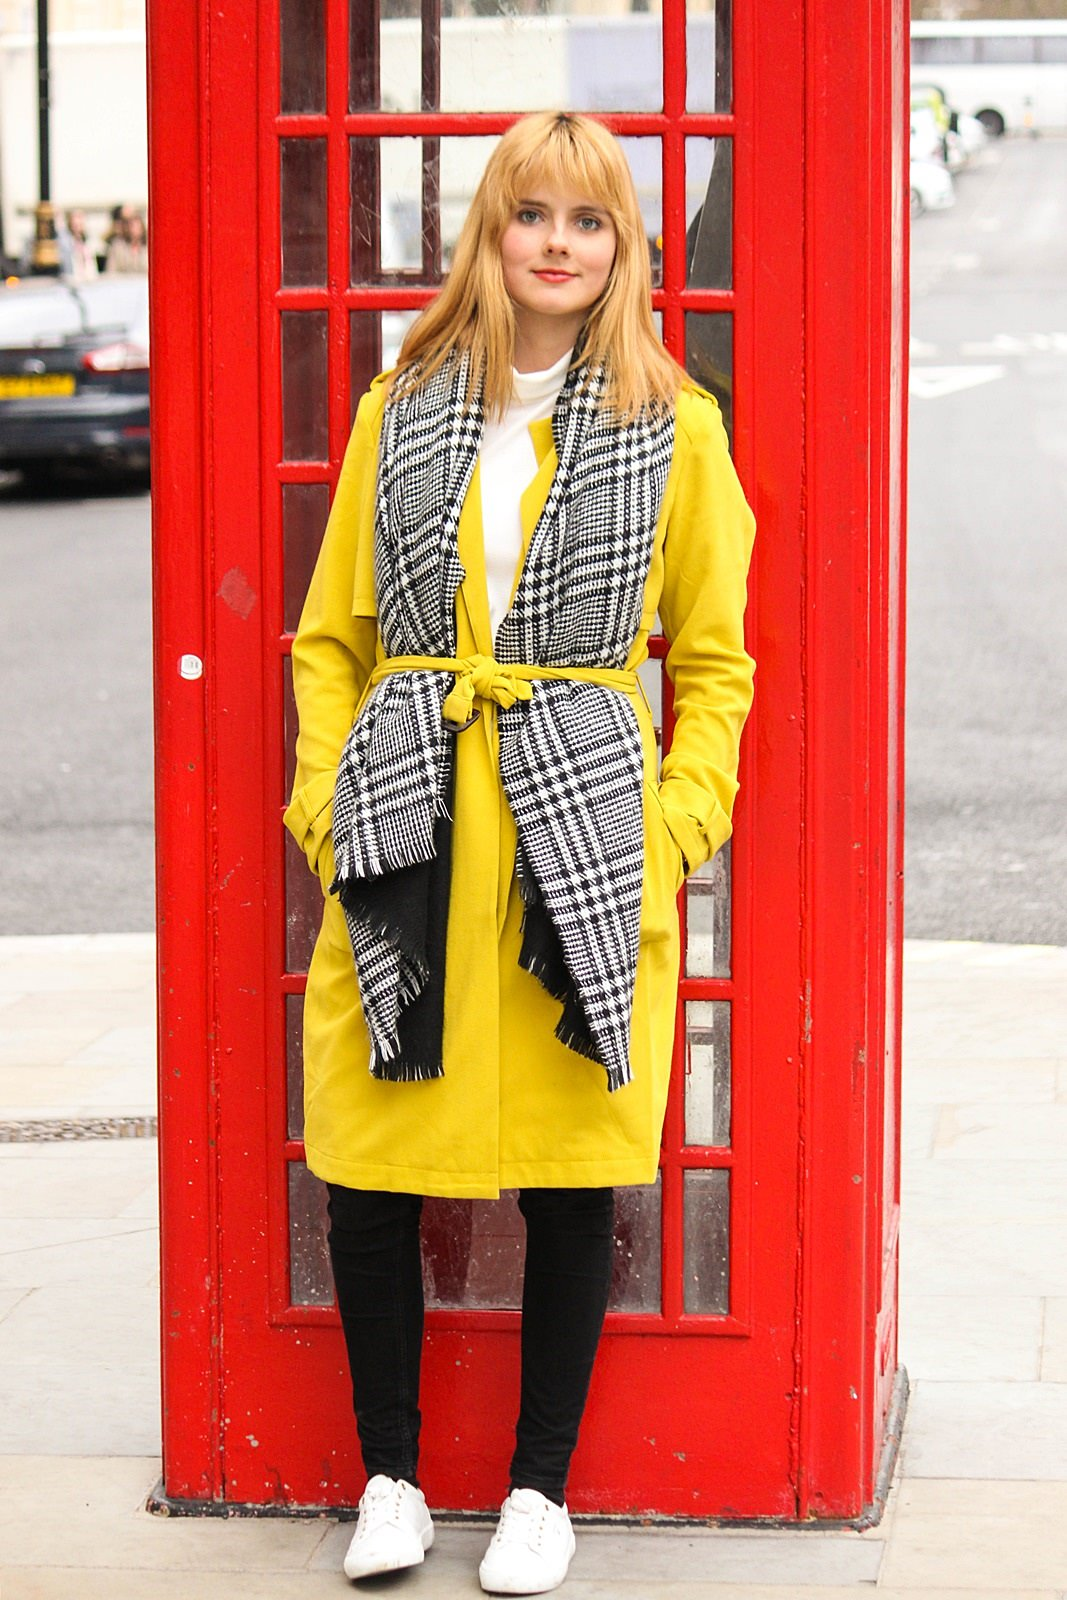 Des Belles Choses - From London with love - Tom Tailor Trenchcoat, Cheap Monday Jeans, Gant Alice Sneakers 4